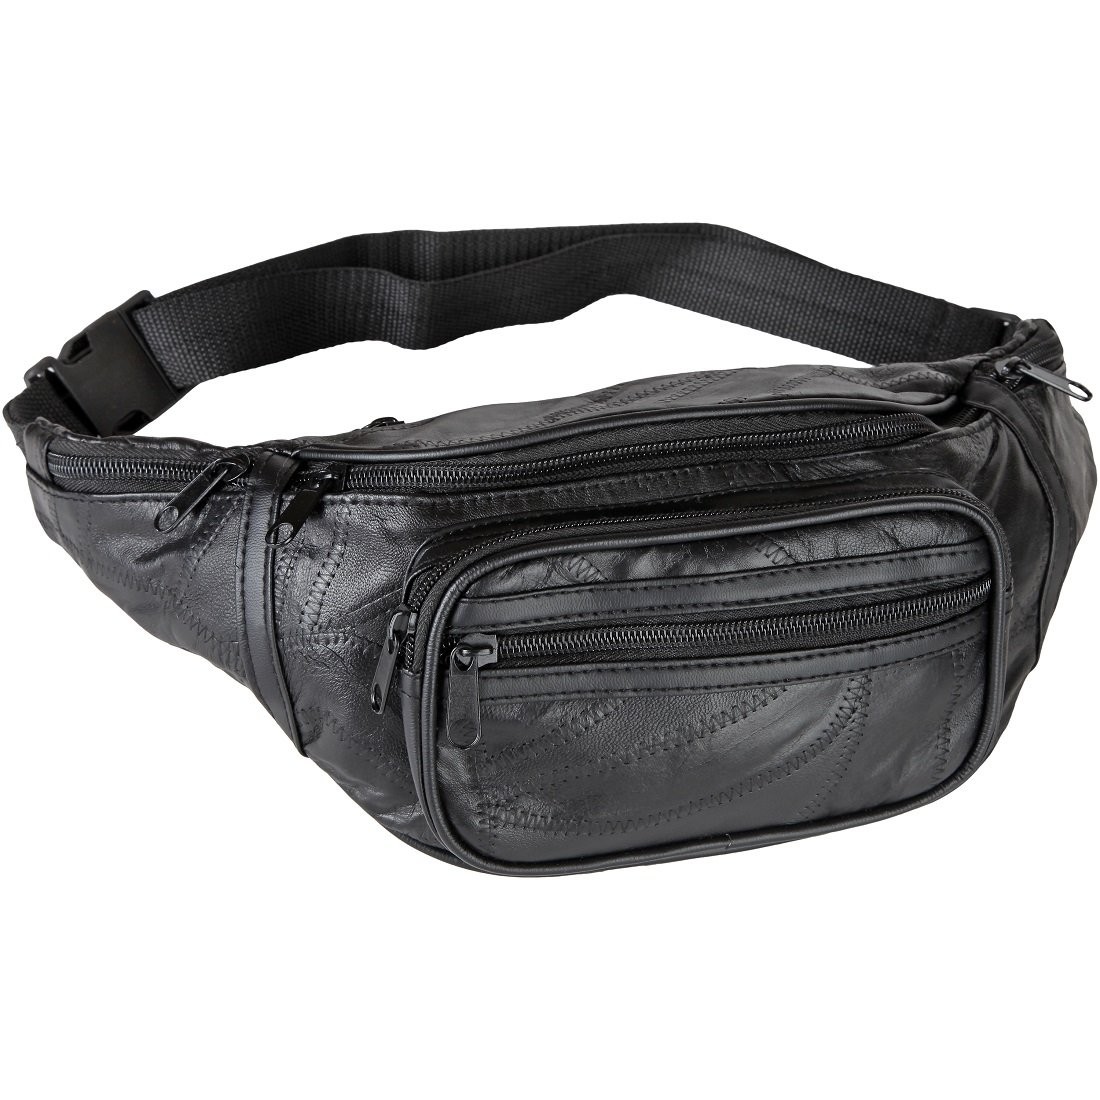 Home-X Genuine Leather Lambskin Waist Bag, Fanny Pack